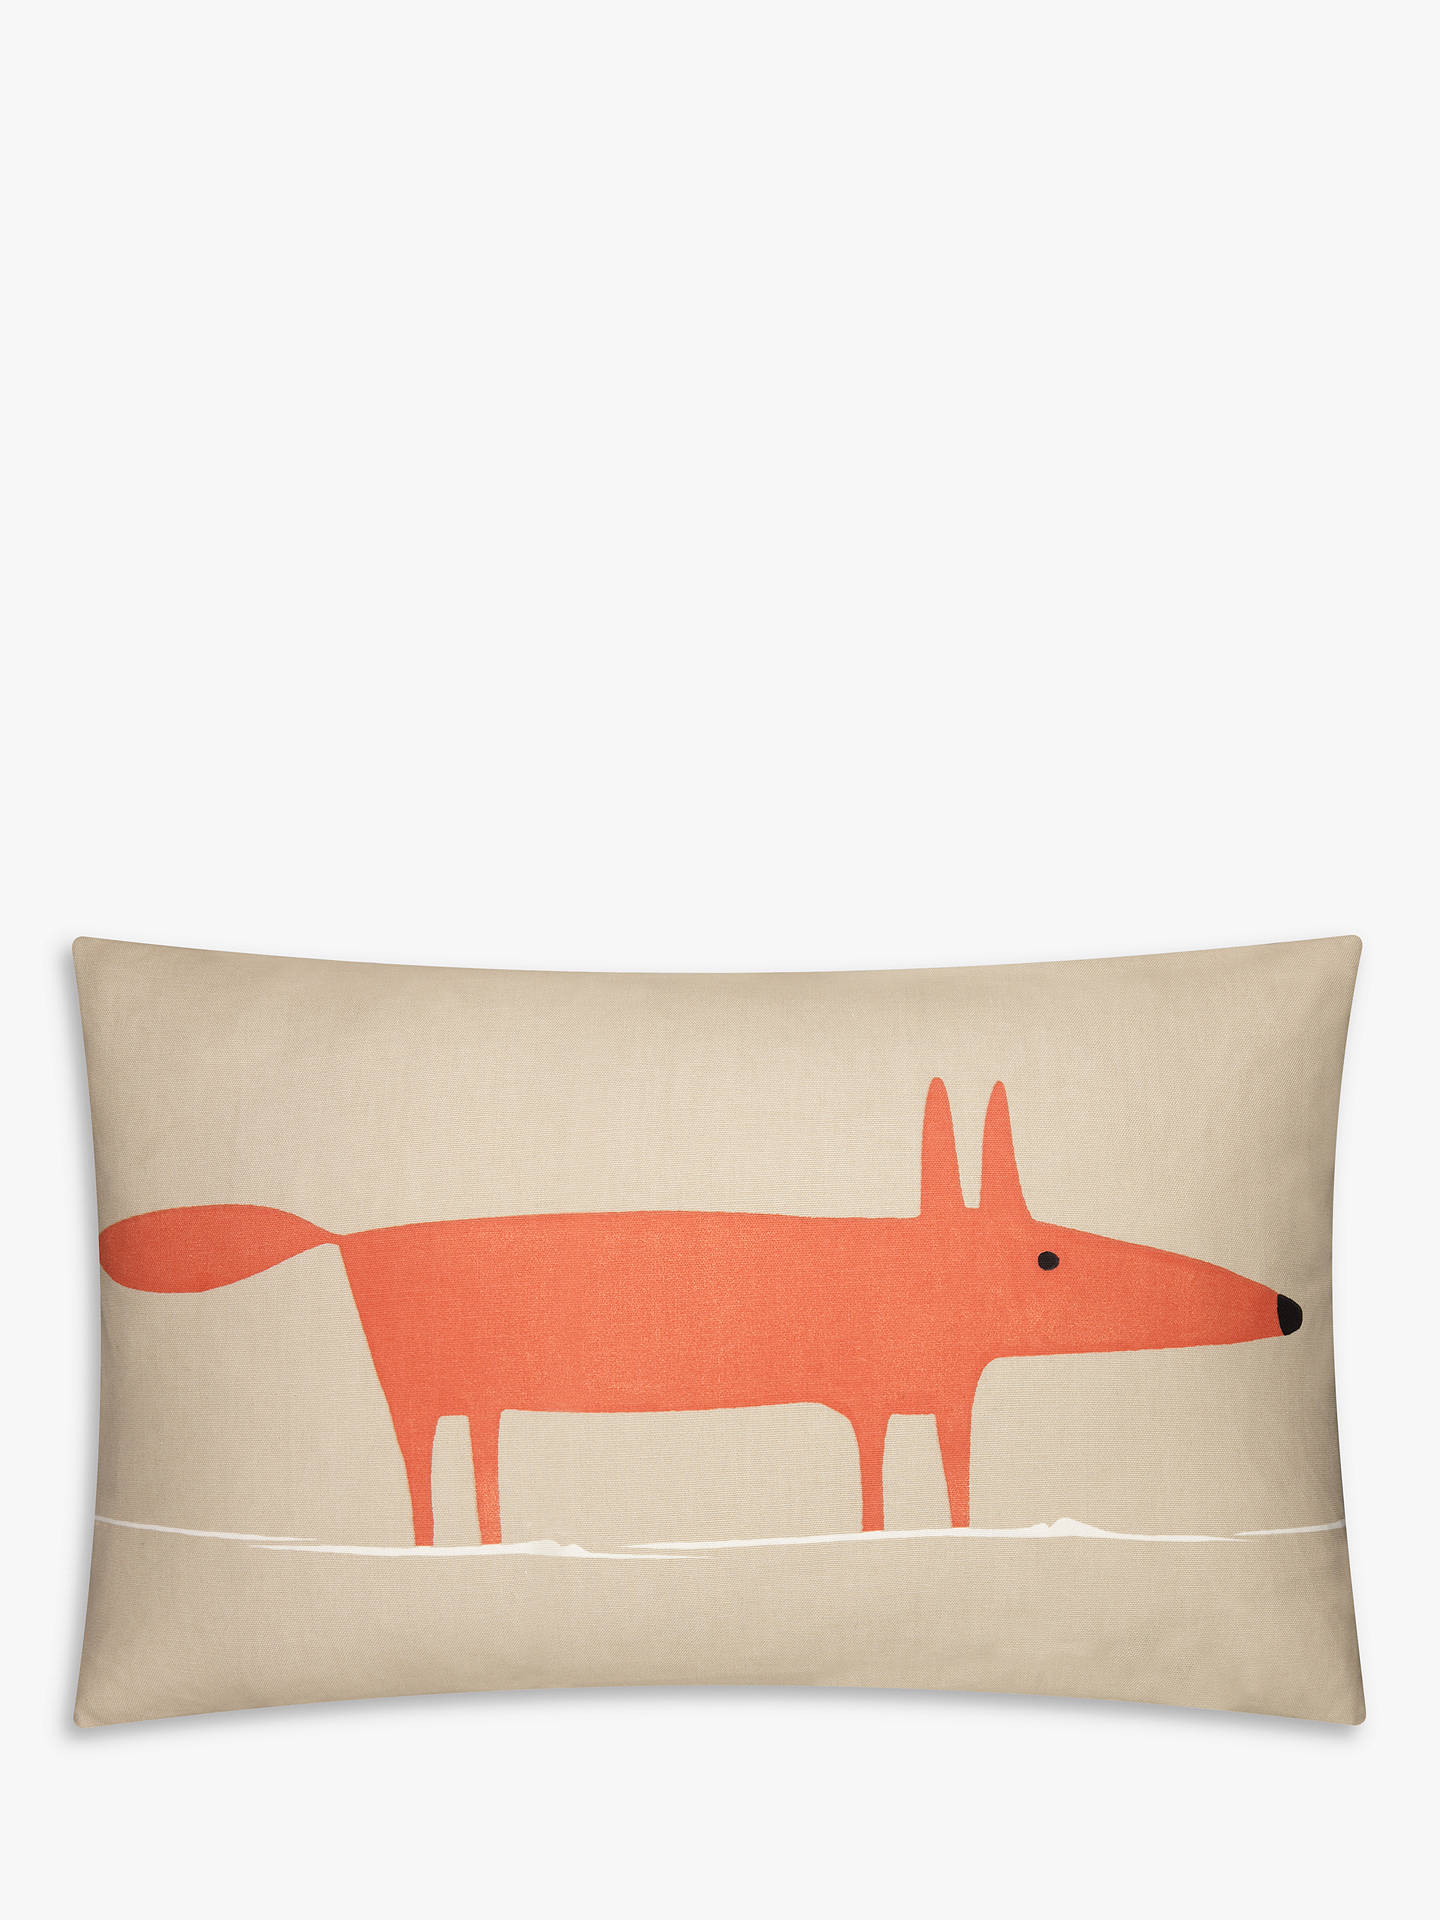 BuyScion Mr Fox Cushion, Orange / Beige Online at johnlewis.com